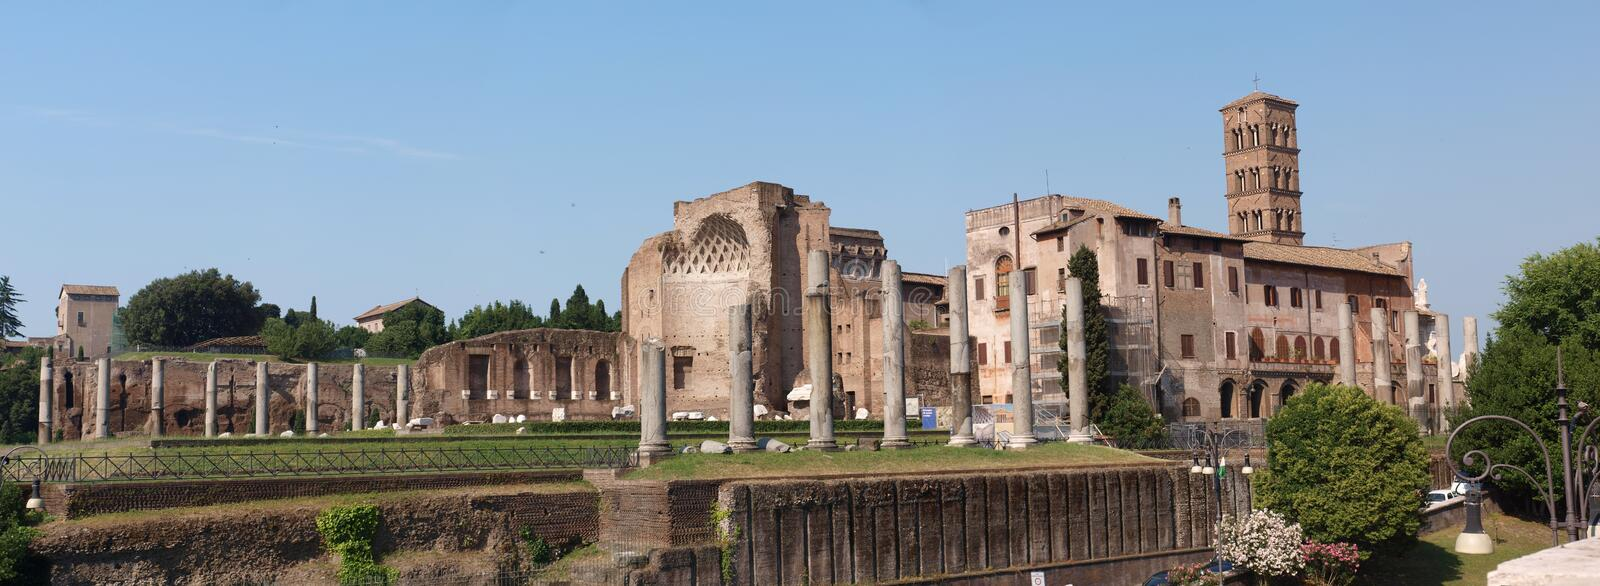 Temple of Venus and Roma, Rome, Italy. The Temple of Venus and Roma on Forum Romanum, Palatine Hill, Rome, Italy. In the background, the tower of the Basilica of royalty free stock image